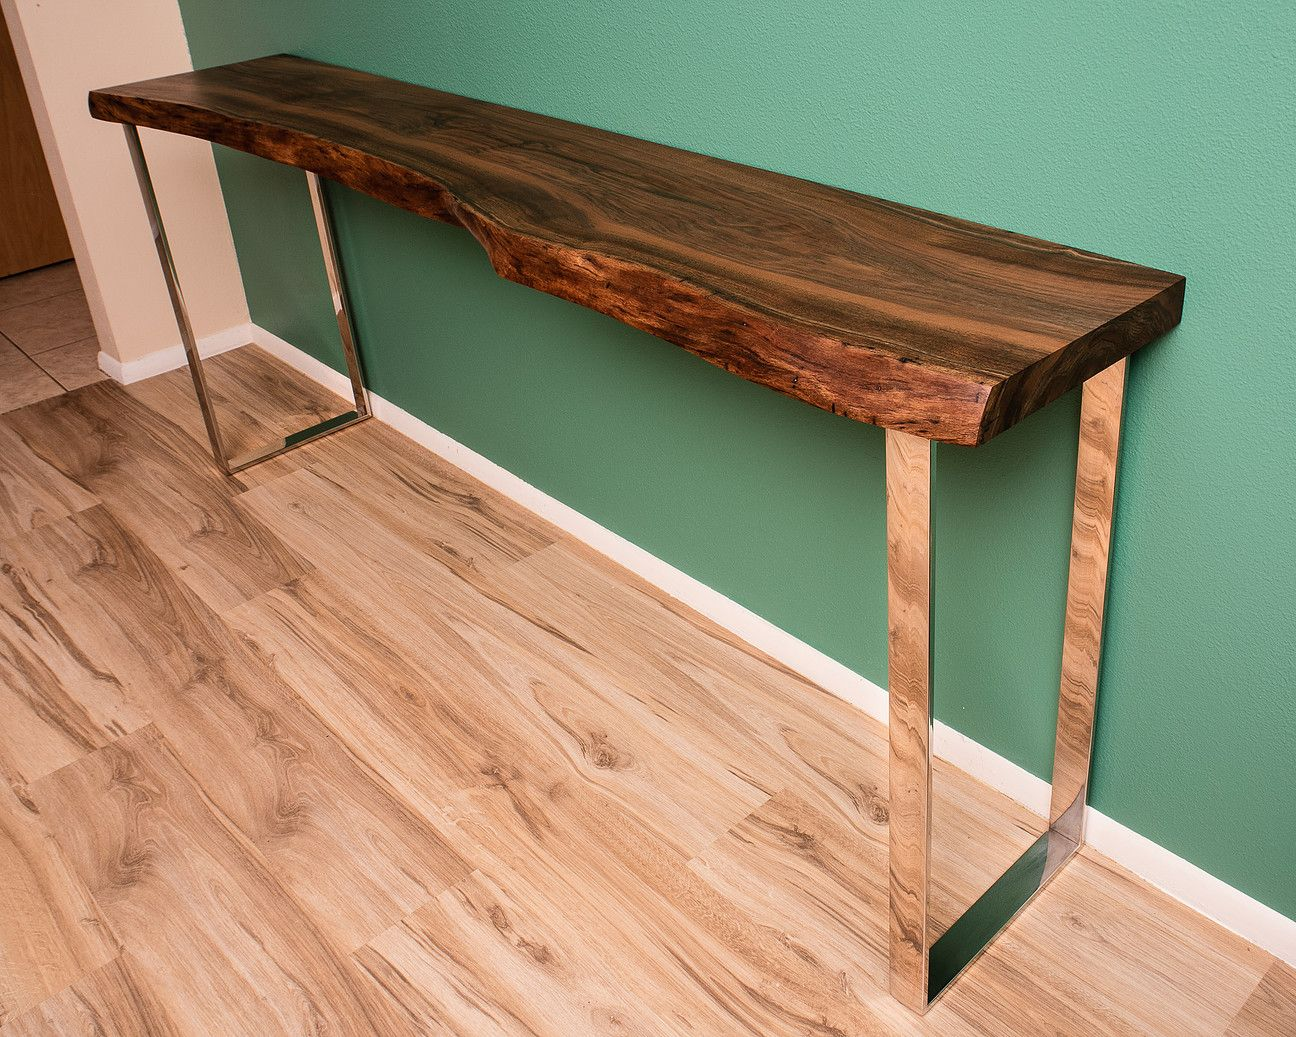 Black Walnut Live Edge Console Table With Modern Polished Stainless Steel Legs Designed And Handcra Live Edge Console Table Wood Slab Table Live Edge Furniture